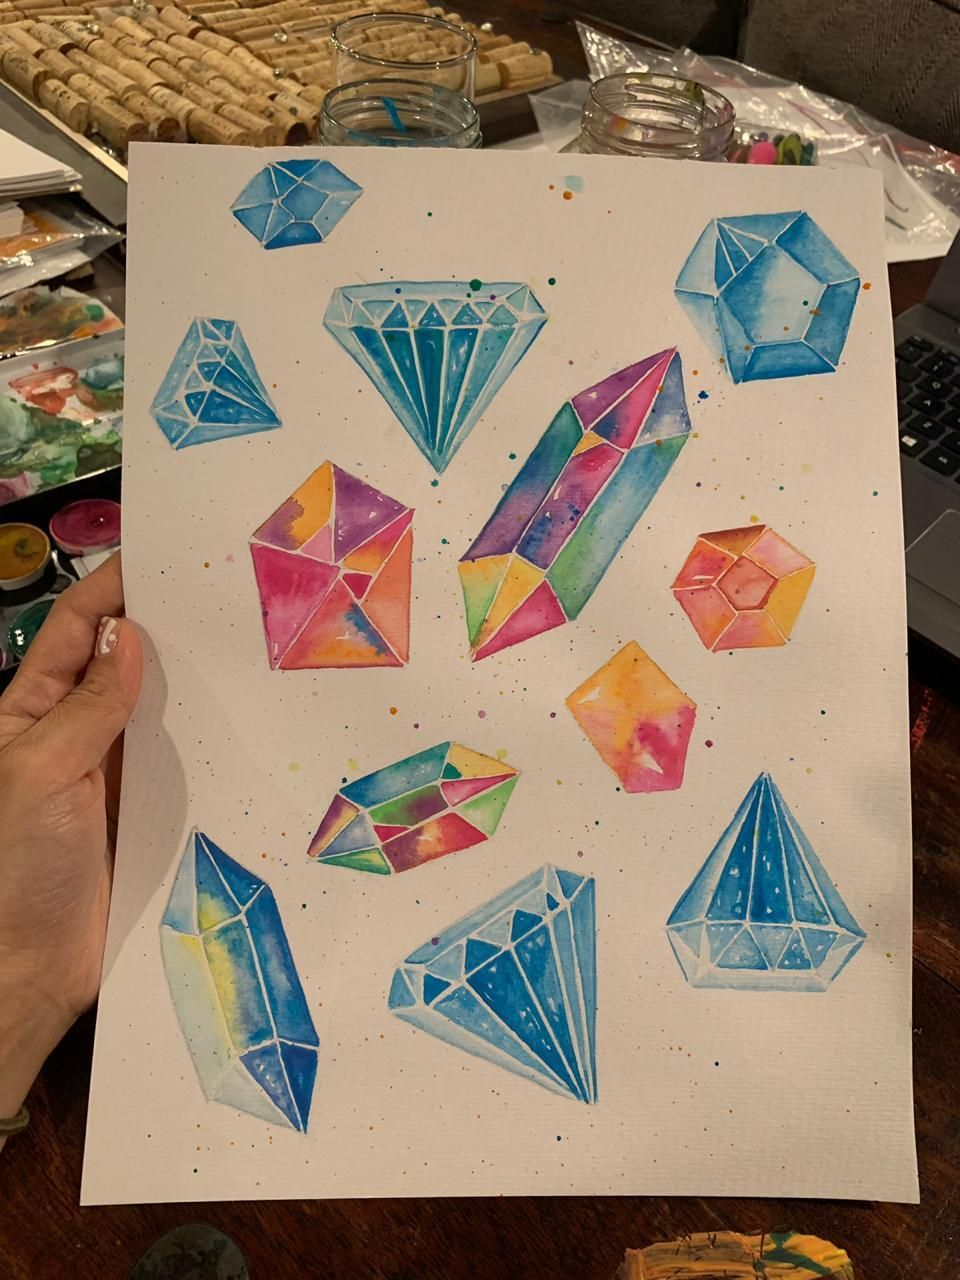 Gems - image 1 - student project